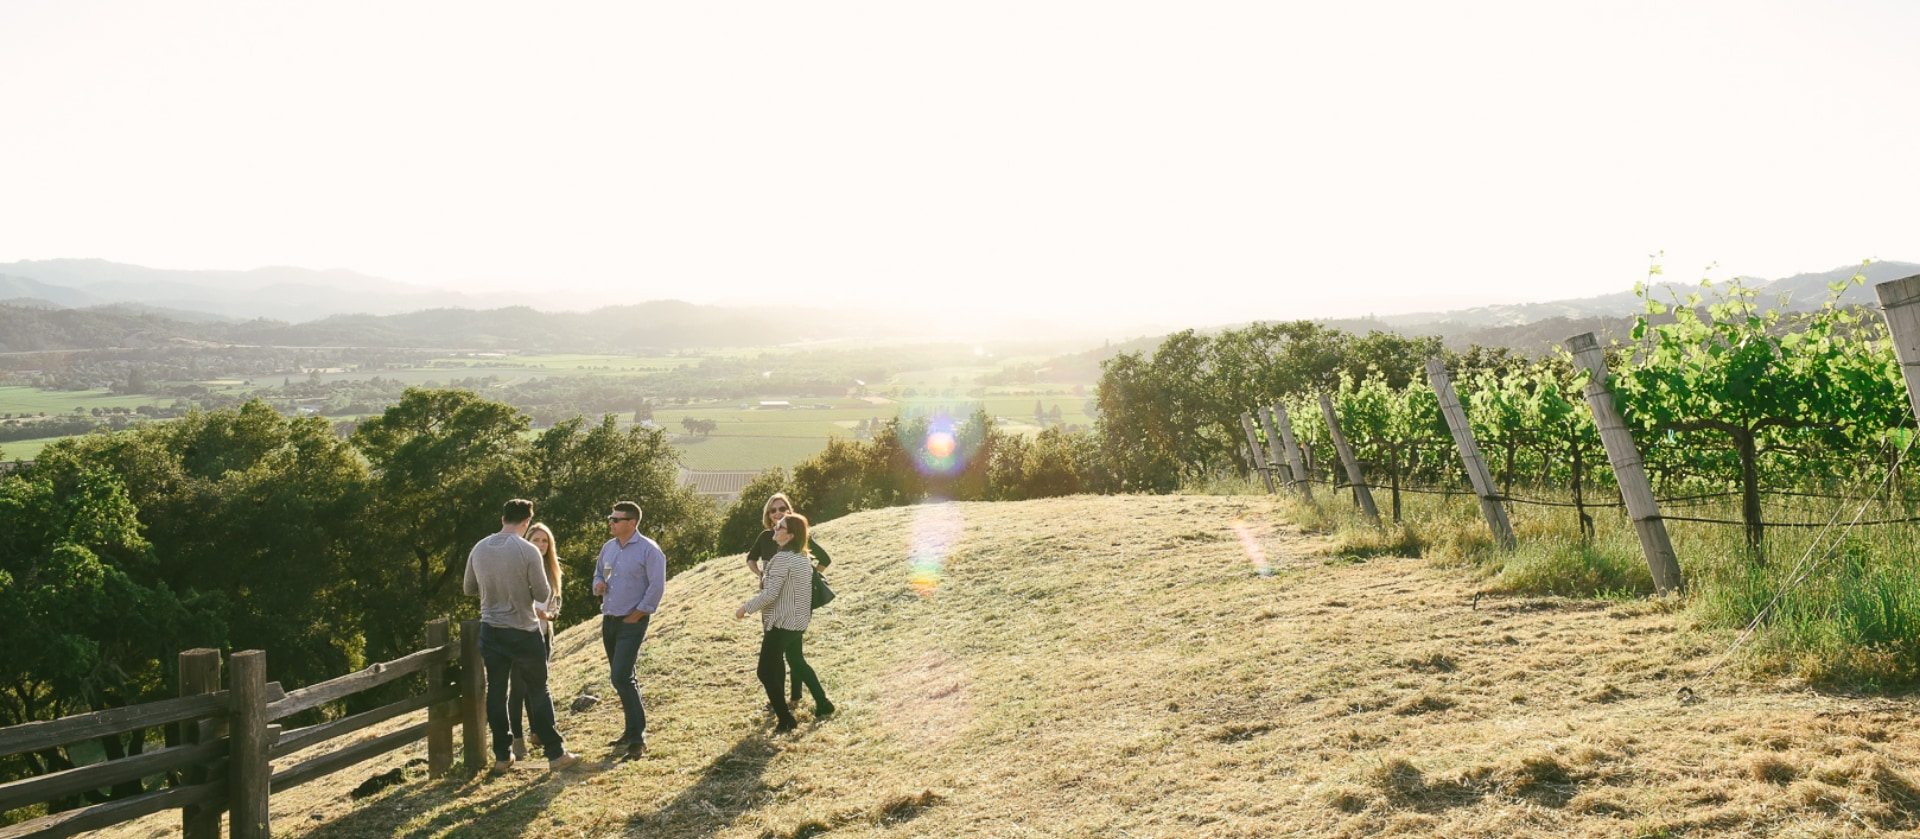 A group of friends overlook the Alexander Valley on a hilltop next to rows of lush green vines